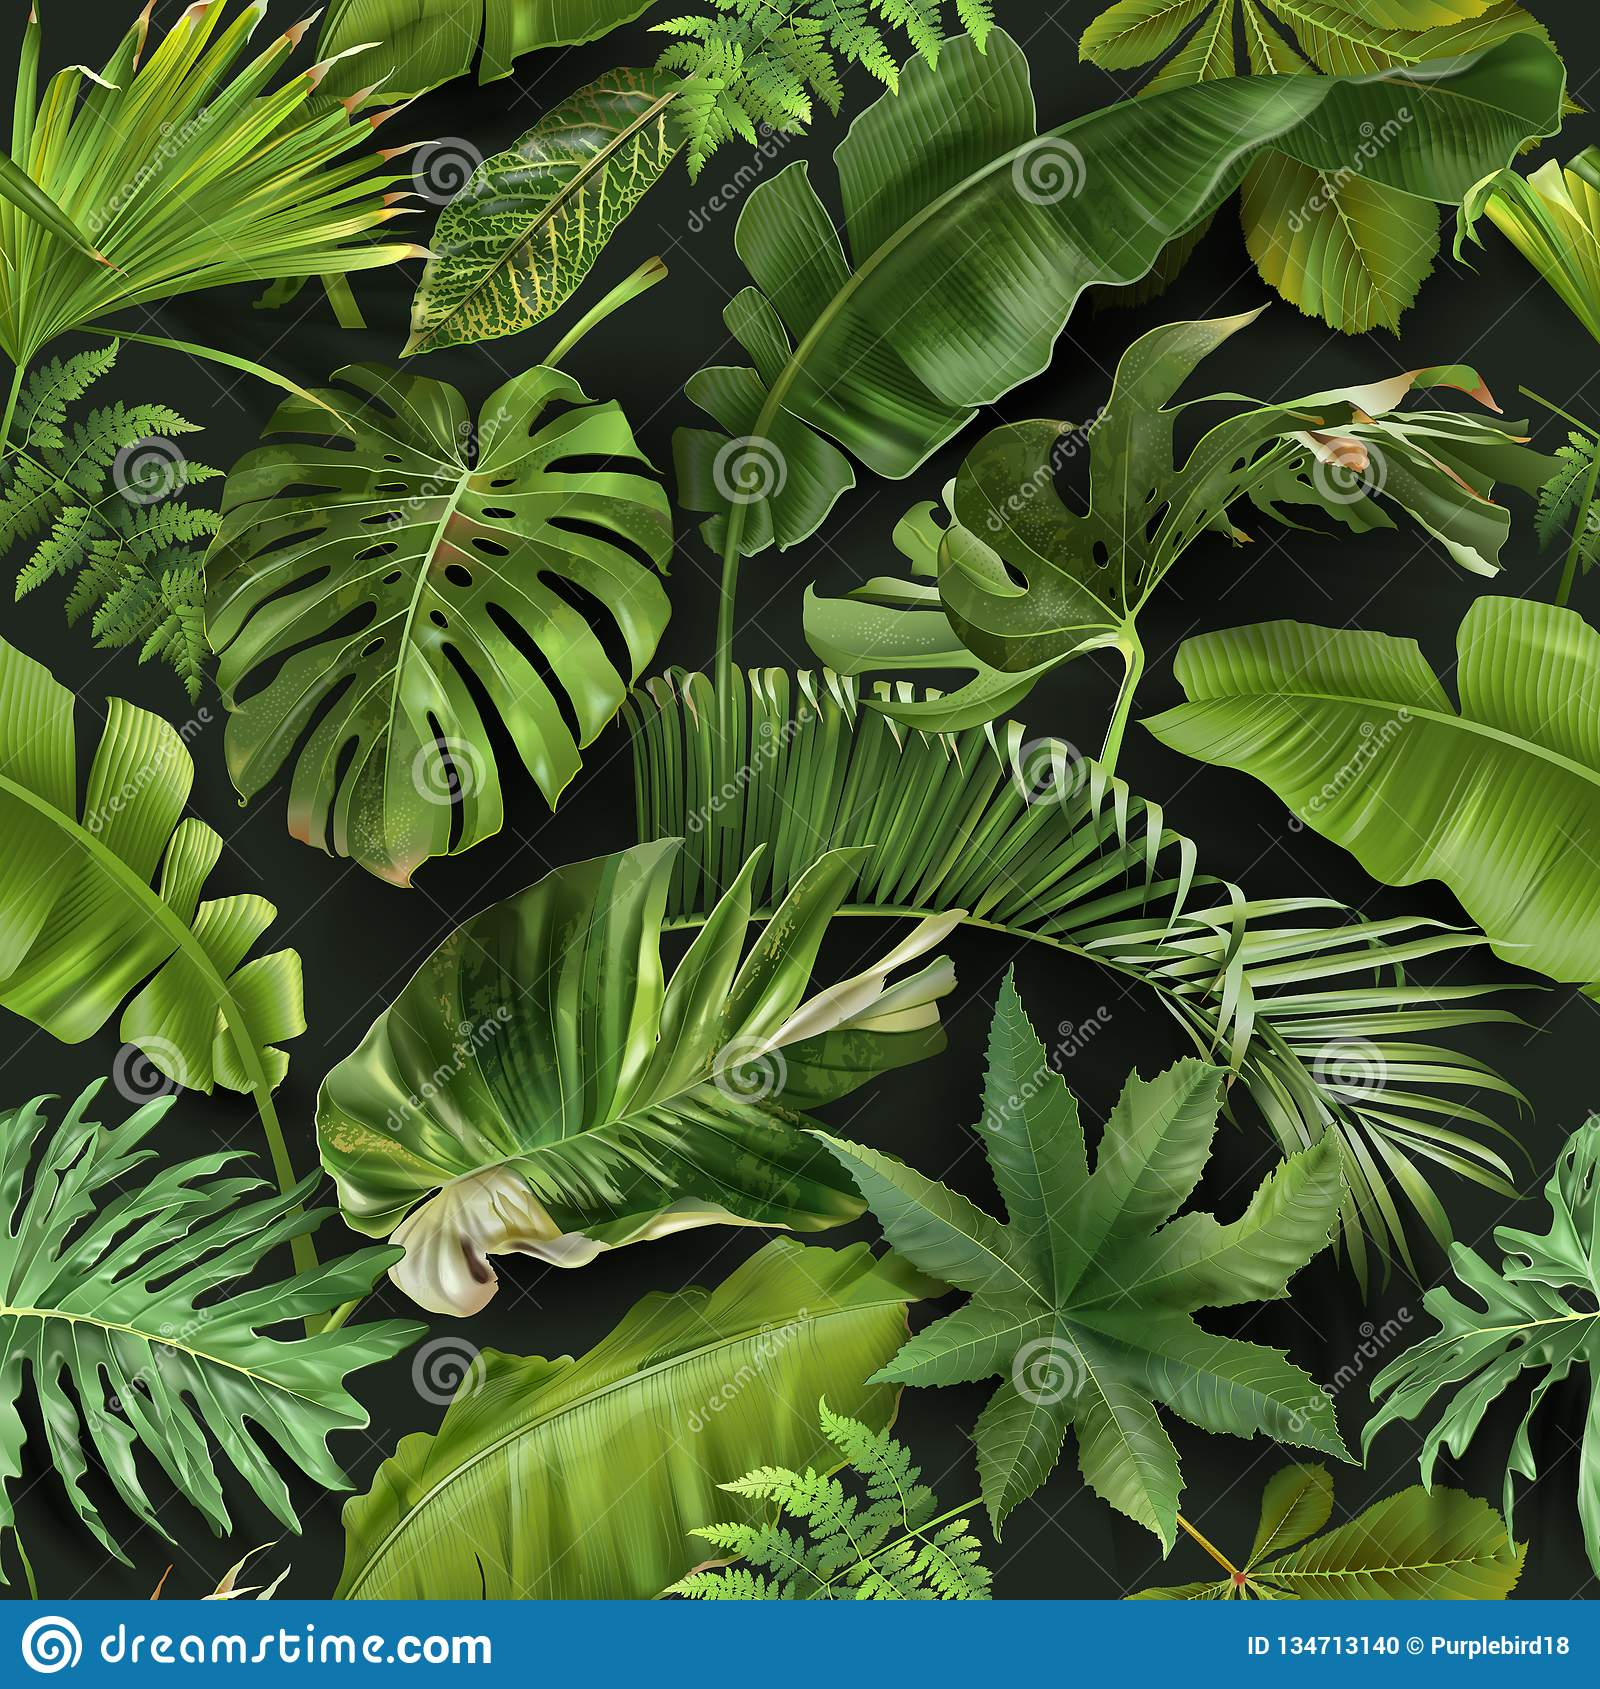 Vector Seamless Pattern With Green Tropical Leaves Stock Vector Illustration Of Forest Leaf 134713140 Download the free graphic resources in the form of png, eps, ai or psd. https www dreamstime com vector seamless pattern green tropical leaves vector seamless pattern green tropical leaves dark green background image134713140